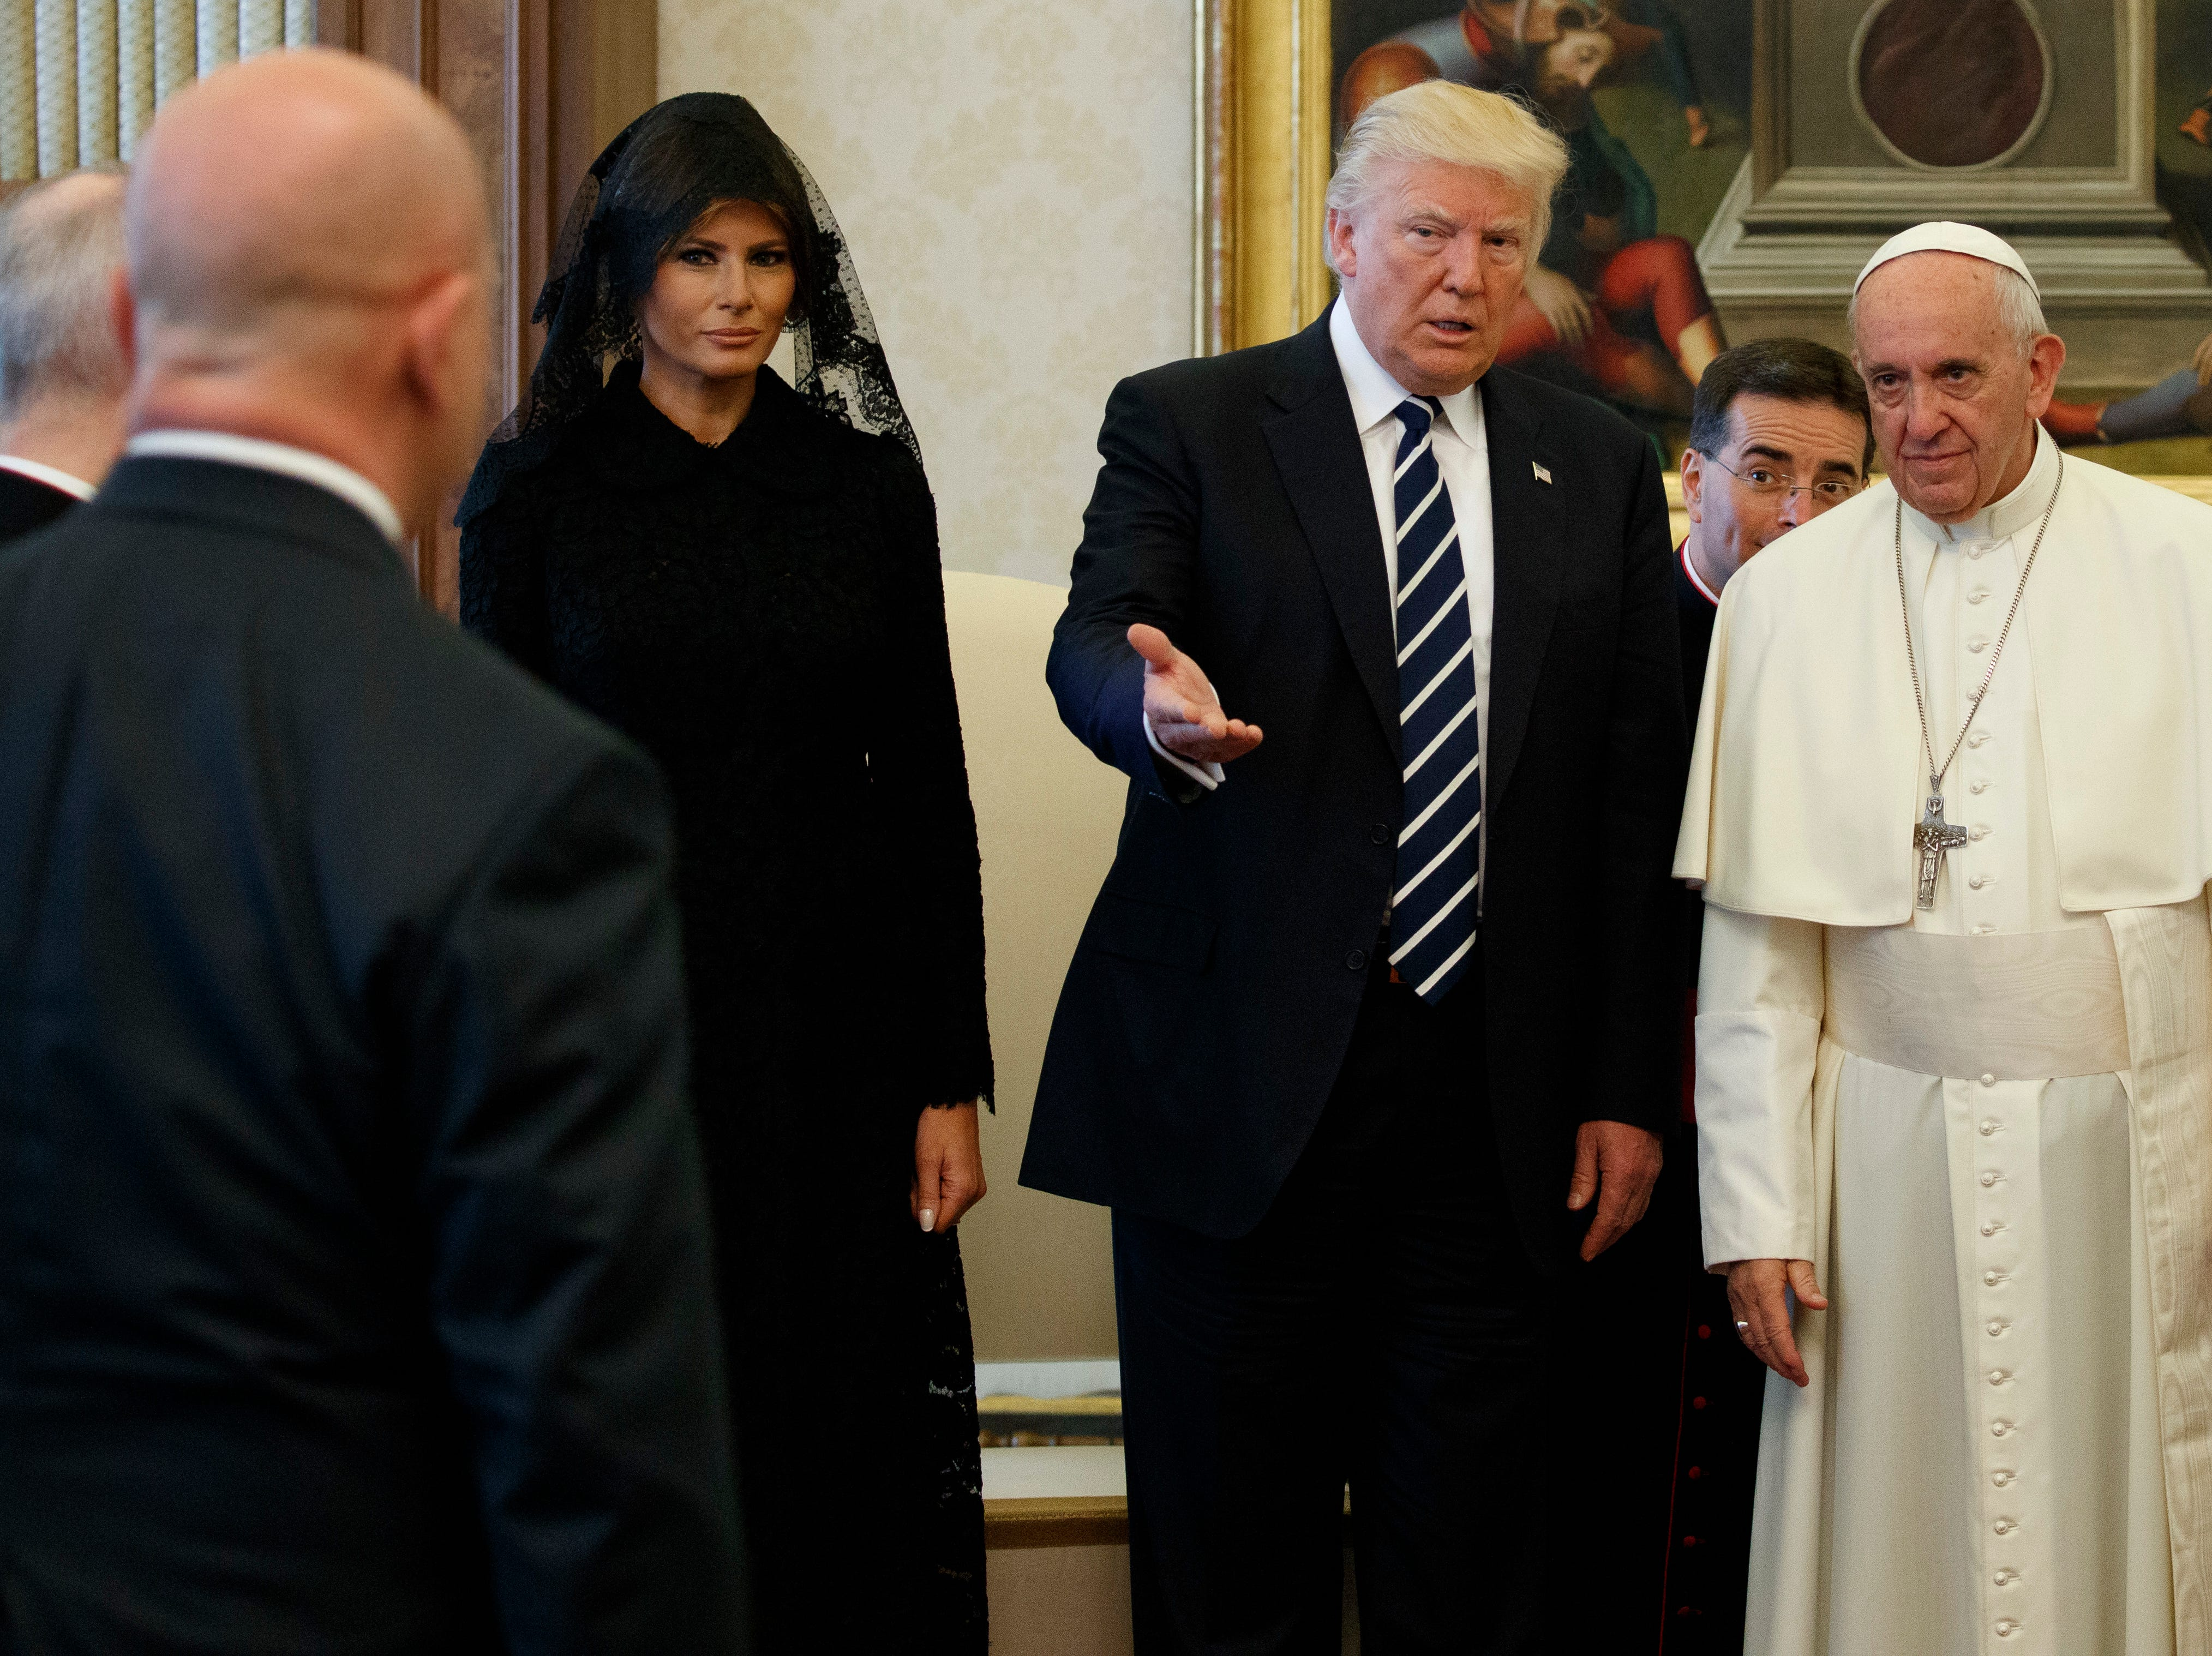 First lady Melania Trump looks on as President Donald Trump introduces National Security Adviser H.R. McMaster to Pope Francis, Wednesday, May 24, 2017, at the Vatican.